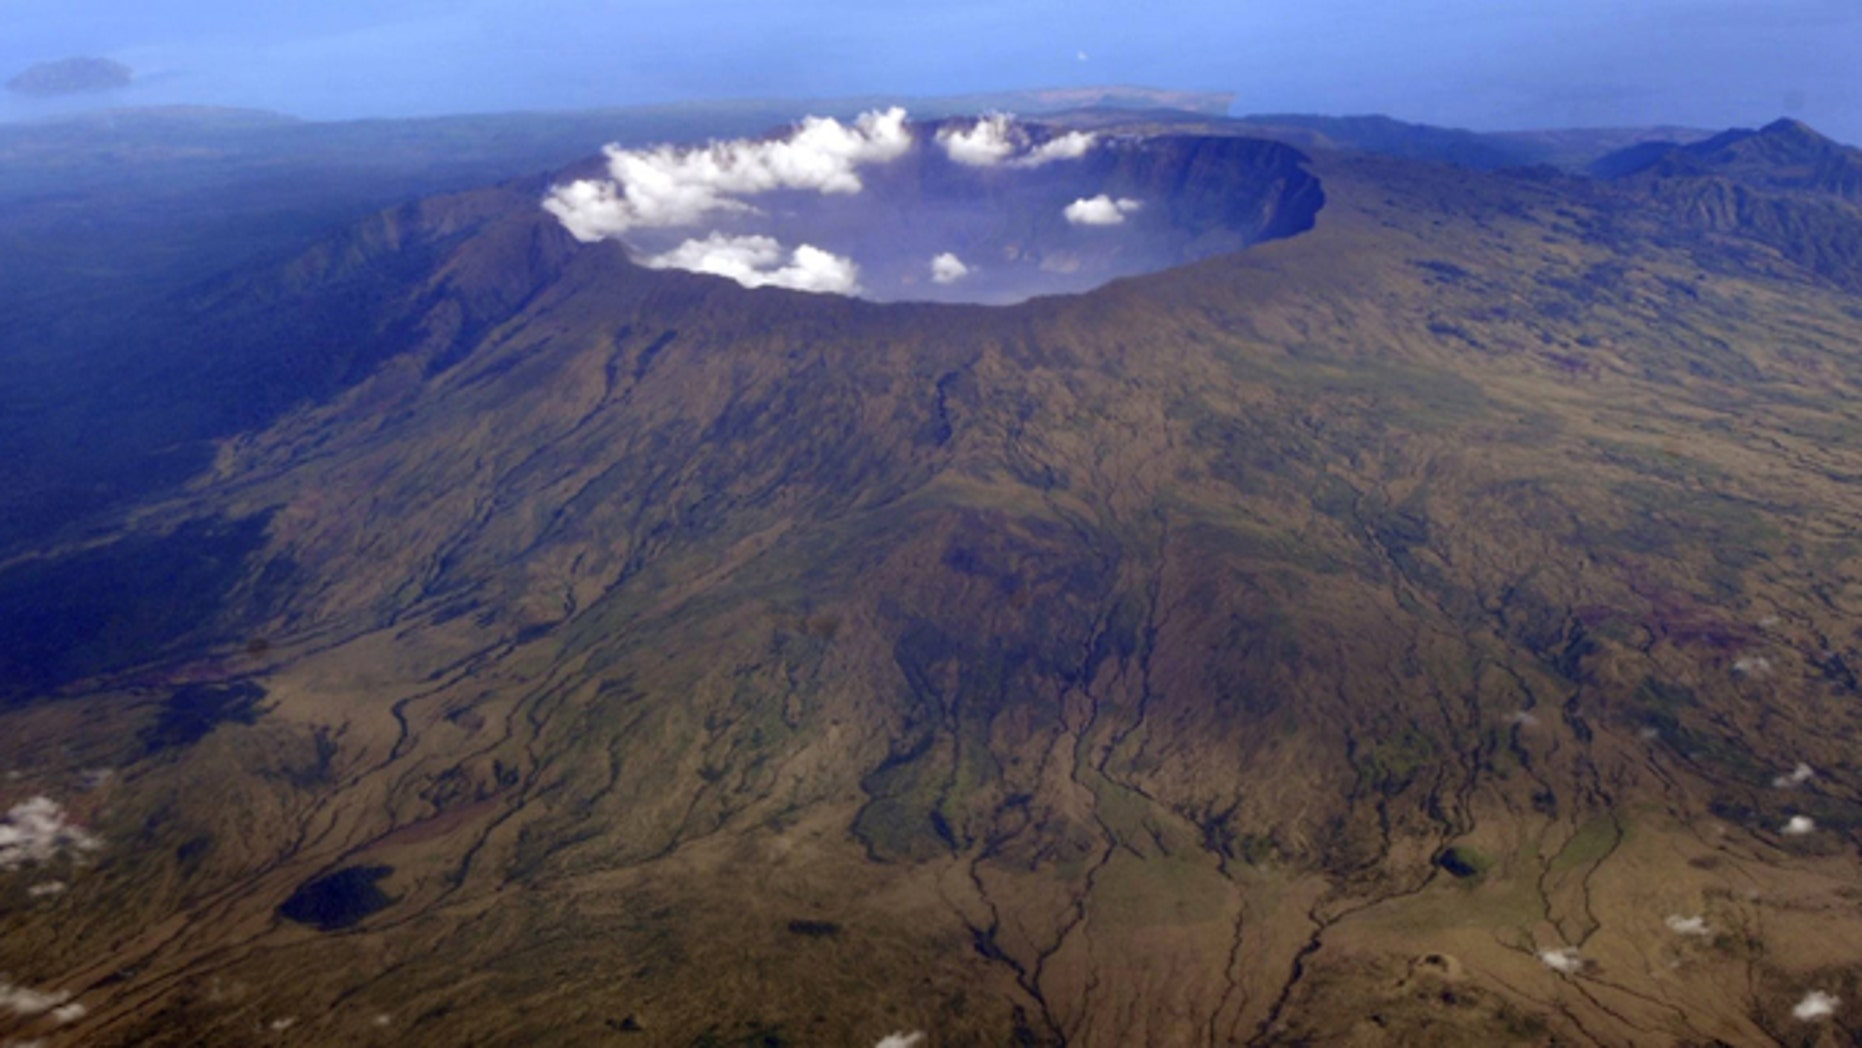 "Oct. 19, 2010"" Mount Tambora's 10 kilometer wide and 1 kilometer deep volcanic crater, created by the April 1815 eruption, is shown. Bold farmers routinely ignore orders to evacuate the slopes of live volcanos in Indonesia, but those on Tambora took no chances when history's deadliest mountain rumbled ominously this month, Sept., 2011."